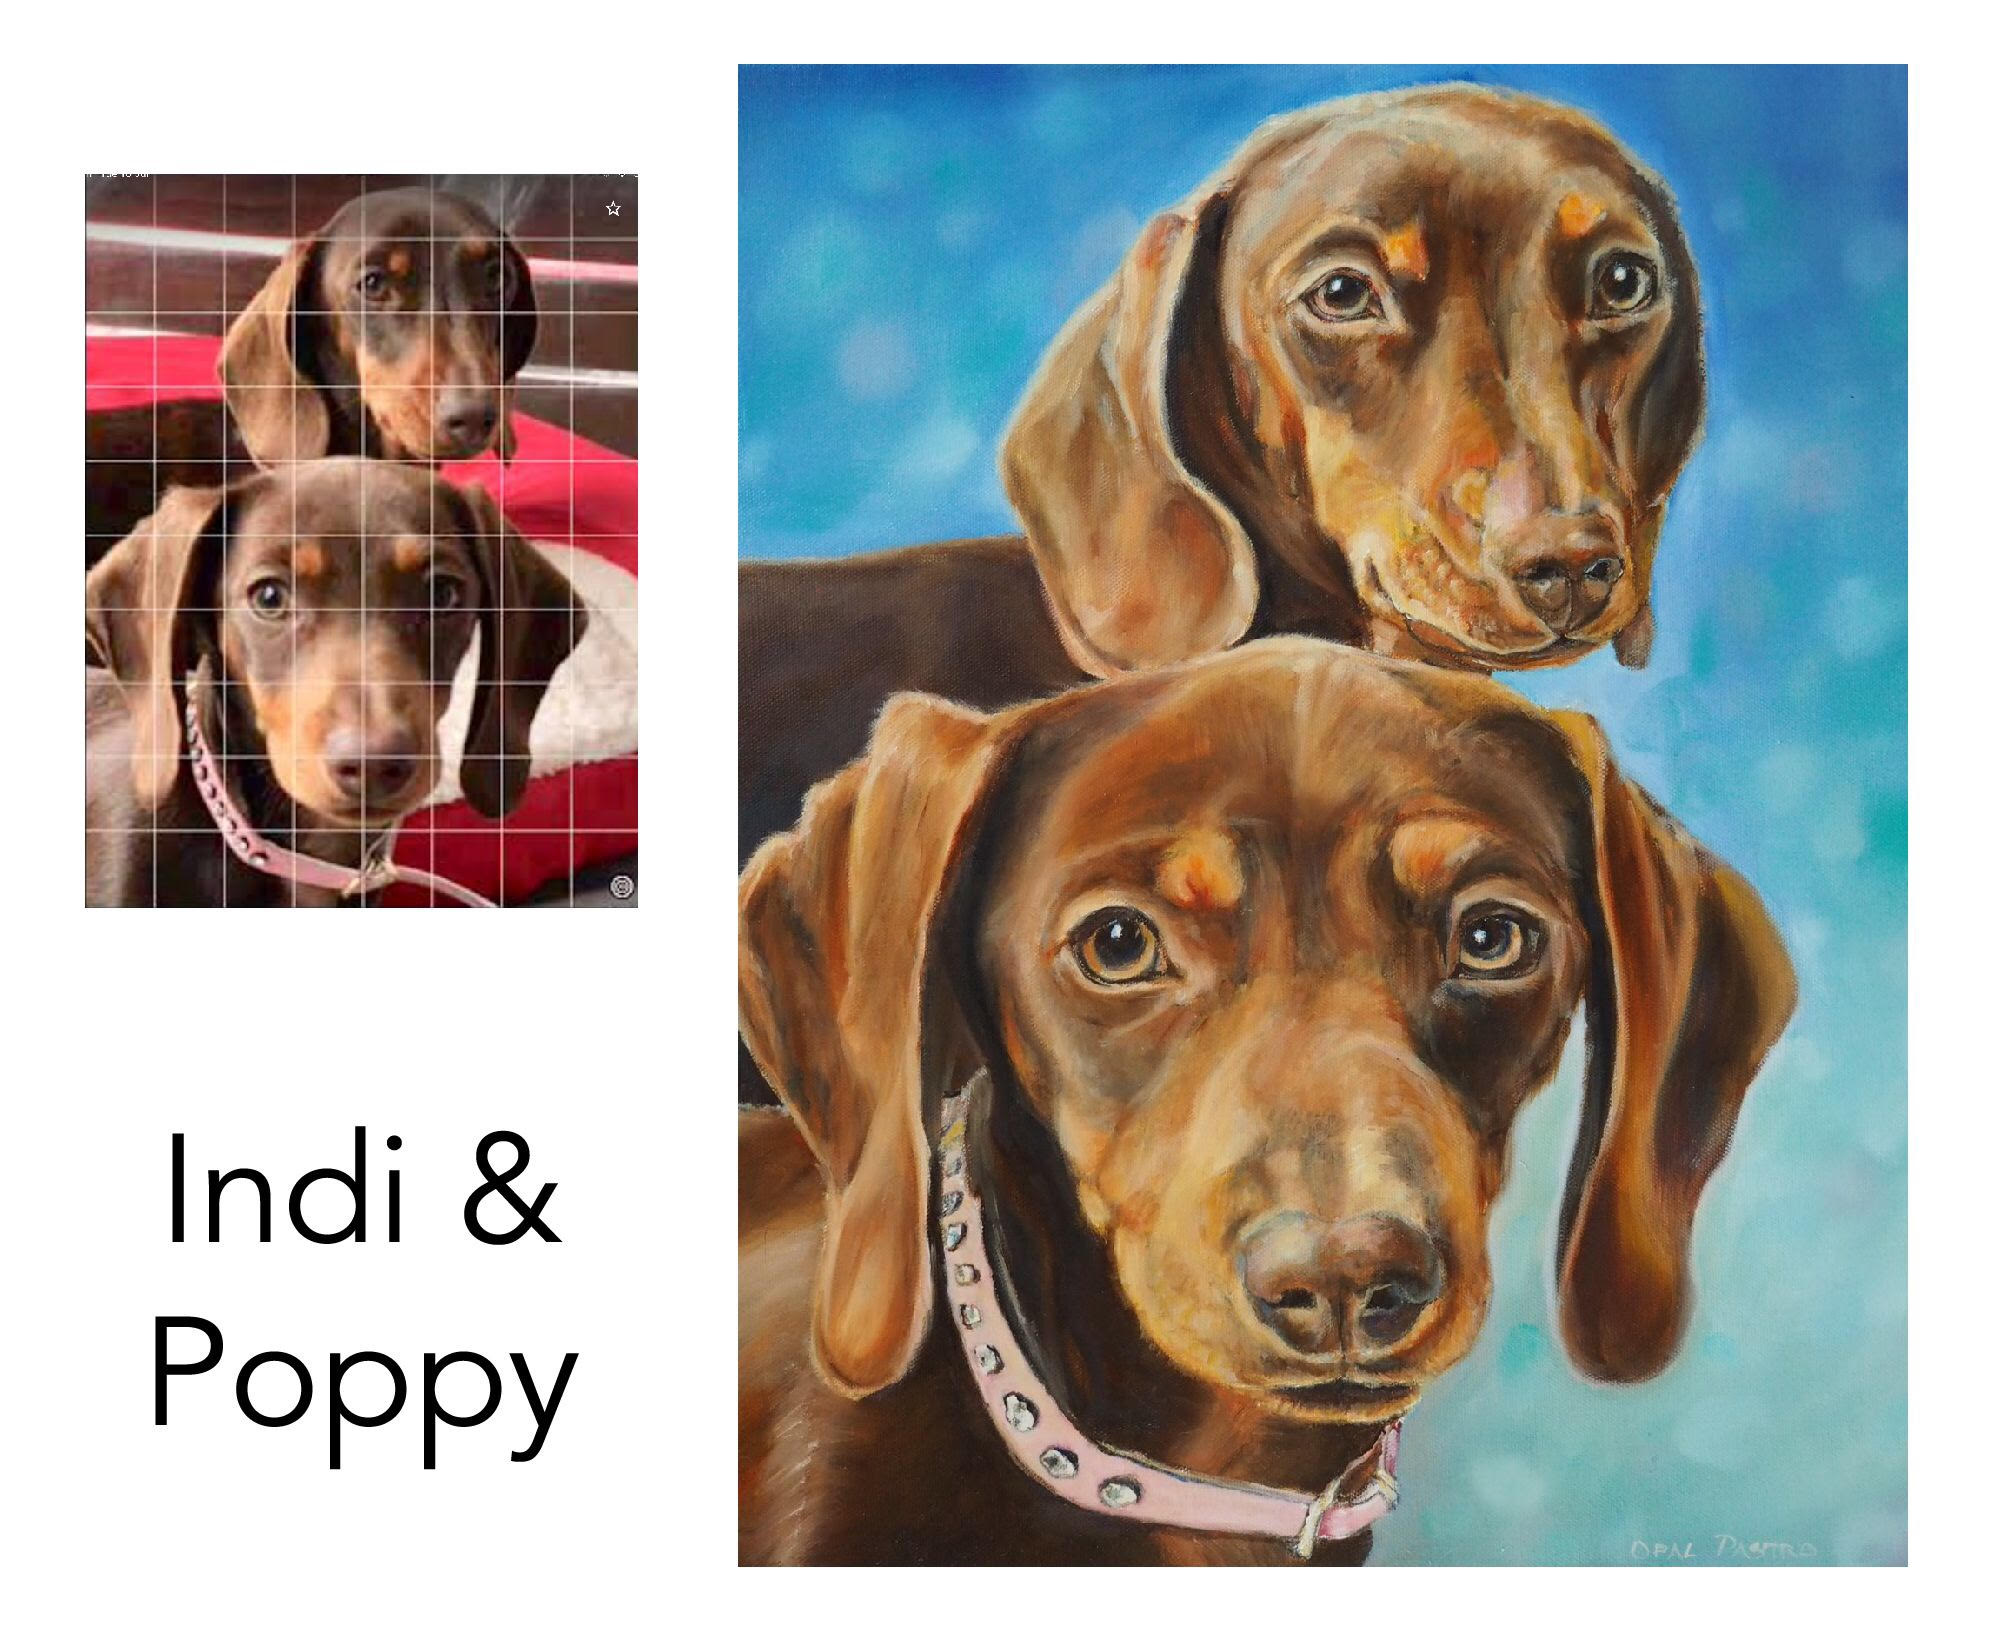 Dachshound - Indi and Poppy are kennel mates who are the delight of their mama. Their Grandma commissioned me to paint their custom portrait as a Christmas gift. Mama's favourite colour is blue - hense the lovely dappled background.